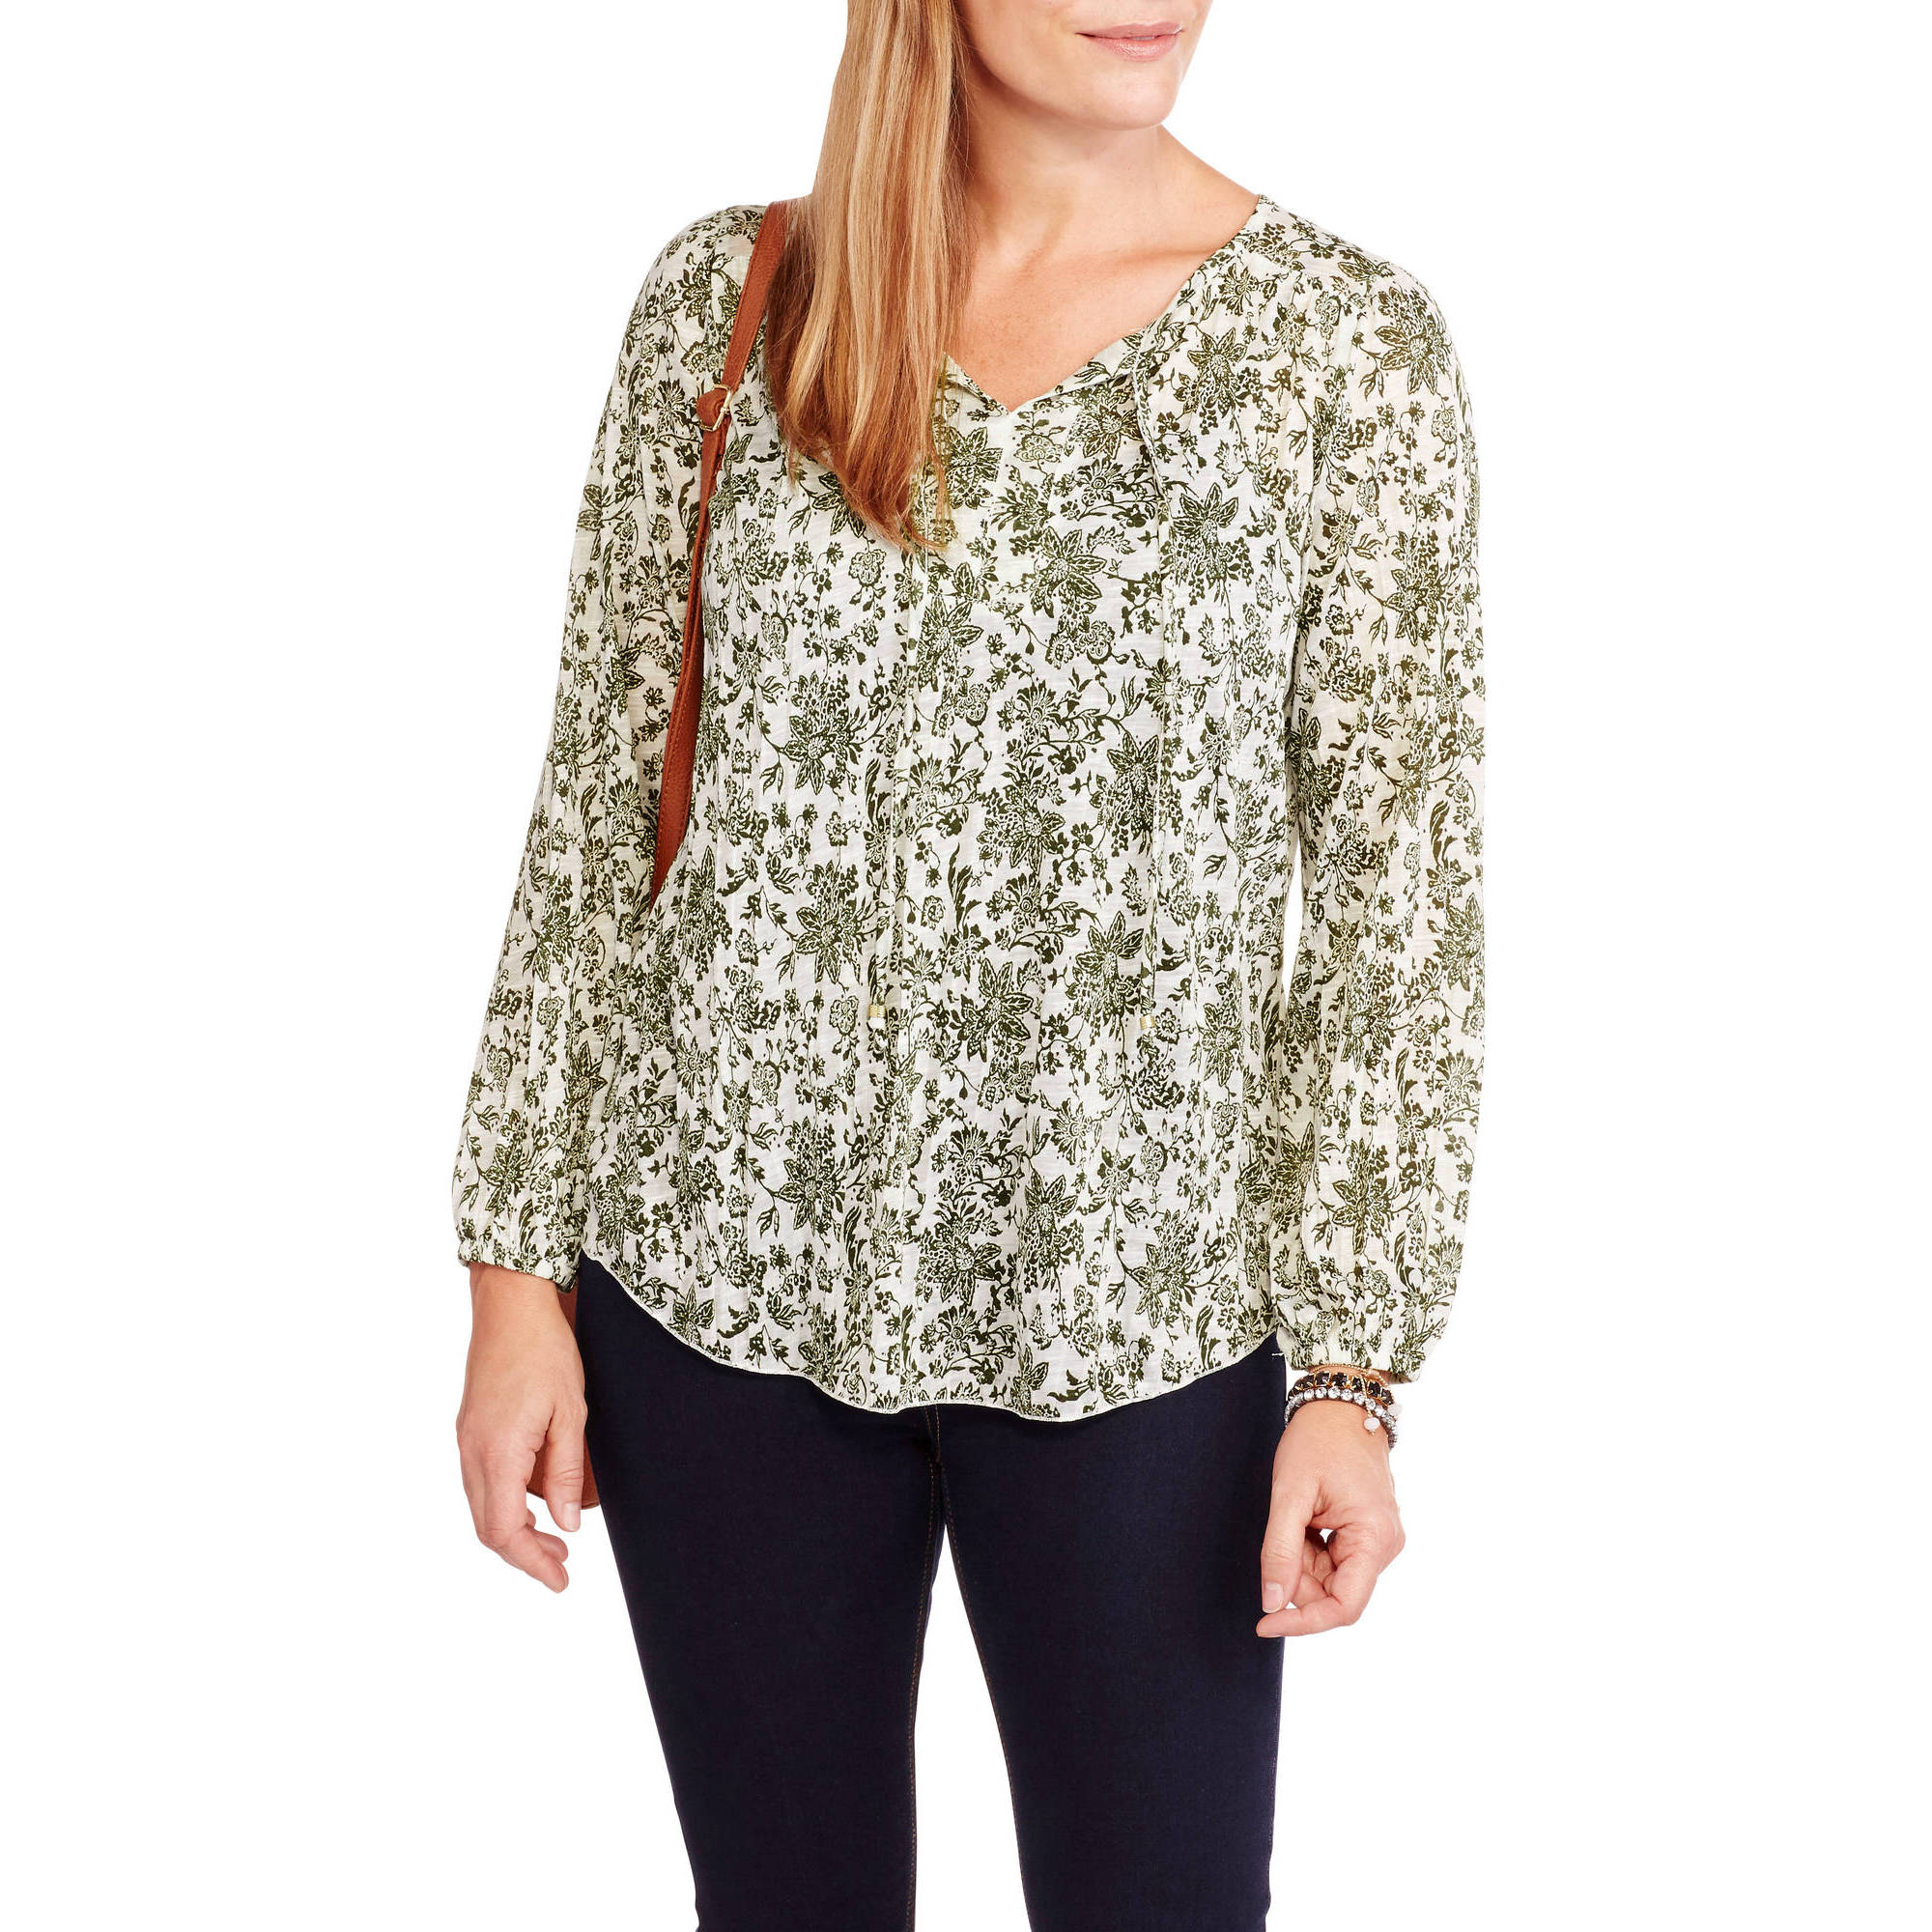 Faded Glory Women's Long-Sleeve Soft Crinkle Knit Peasant Top With Tassles